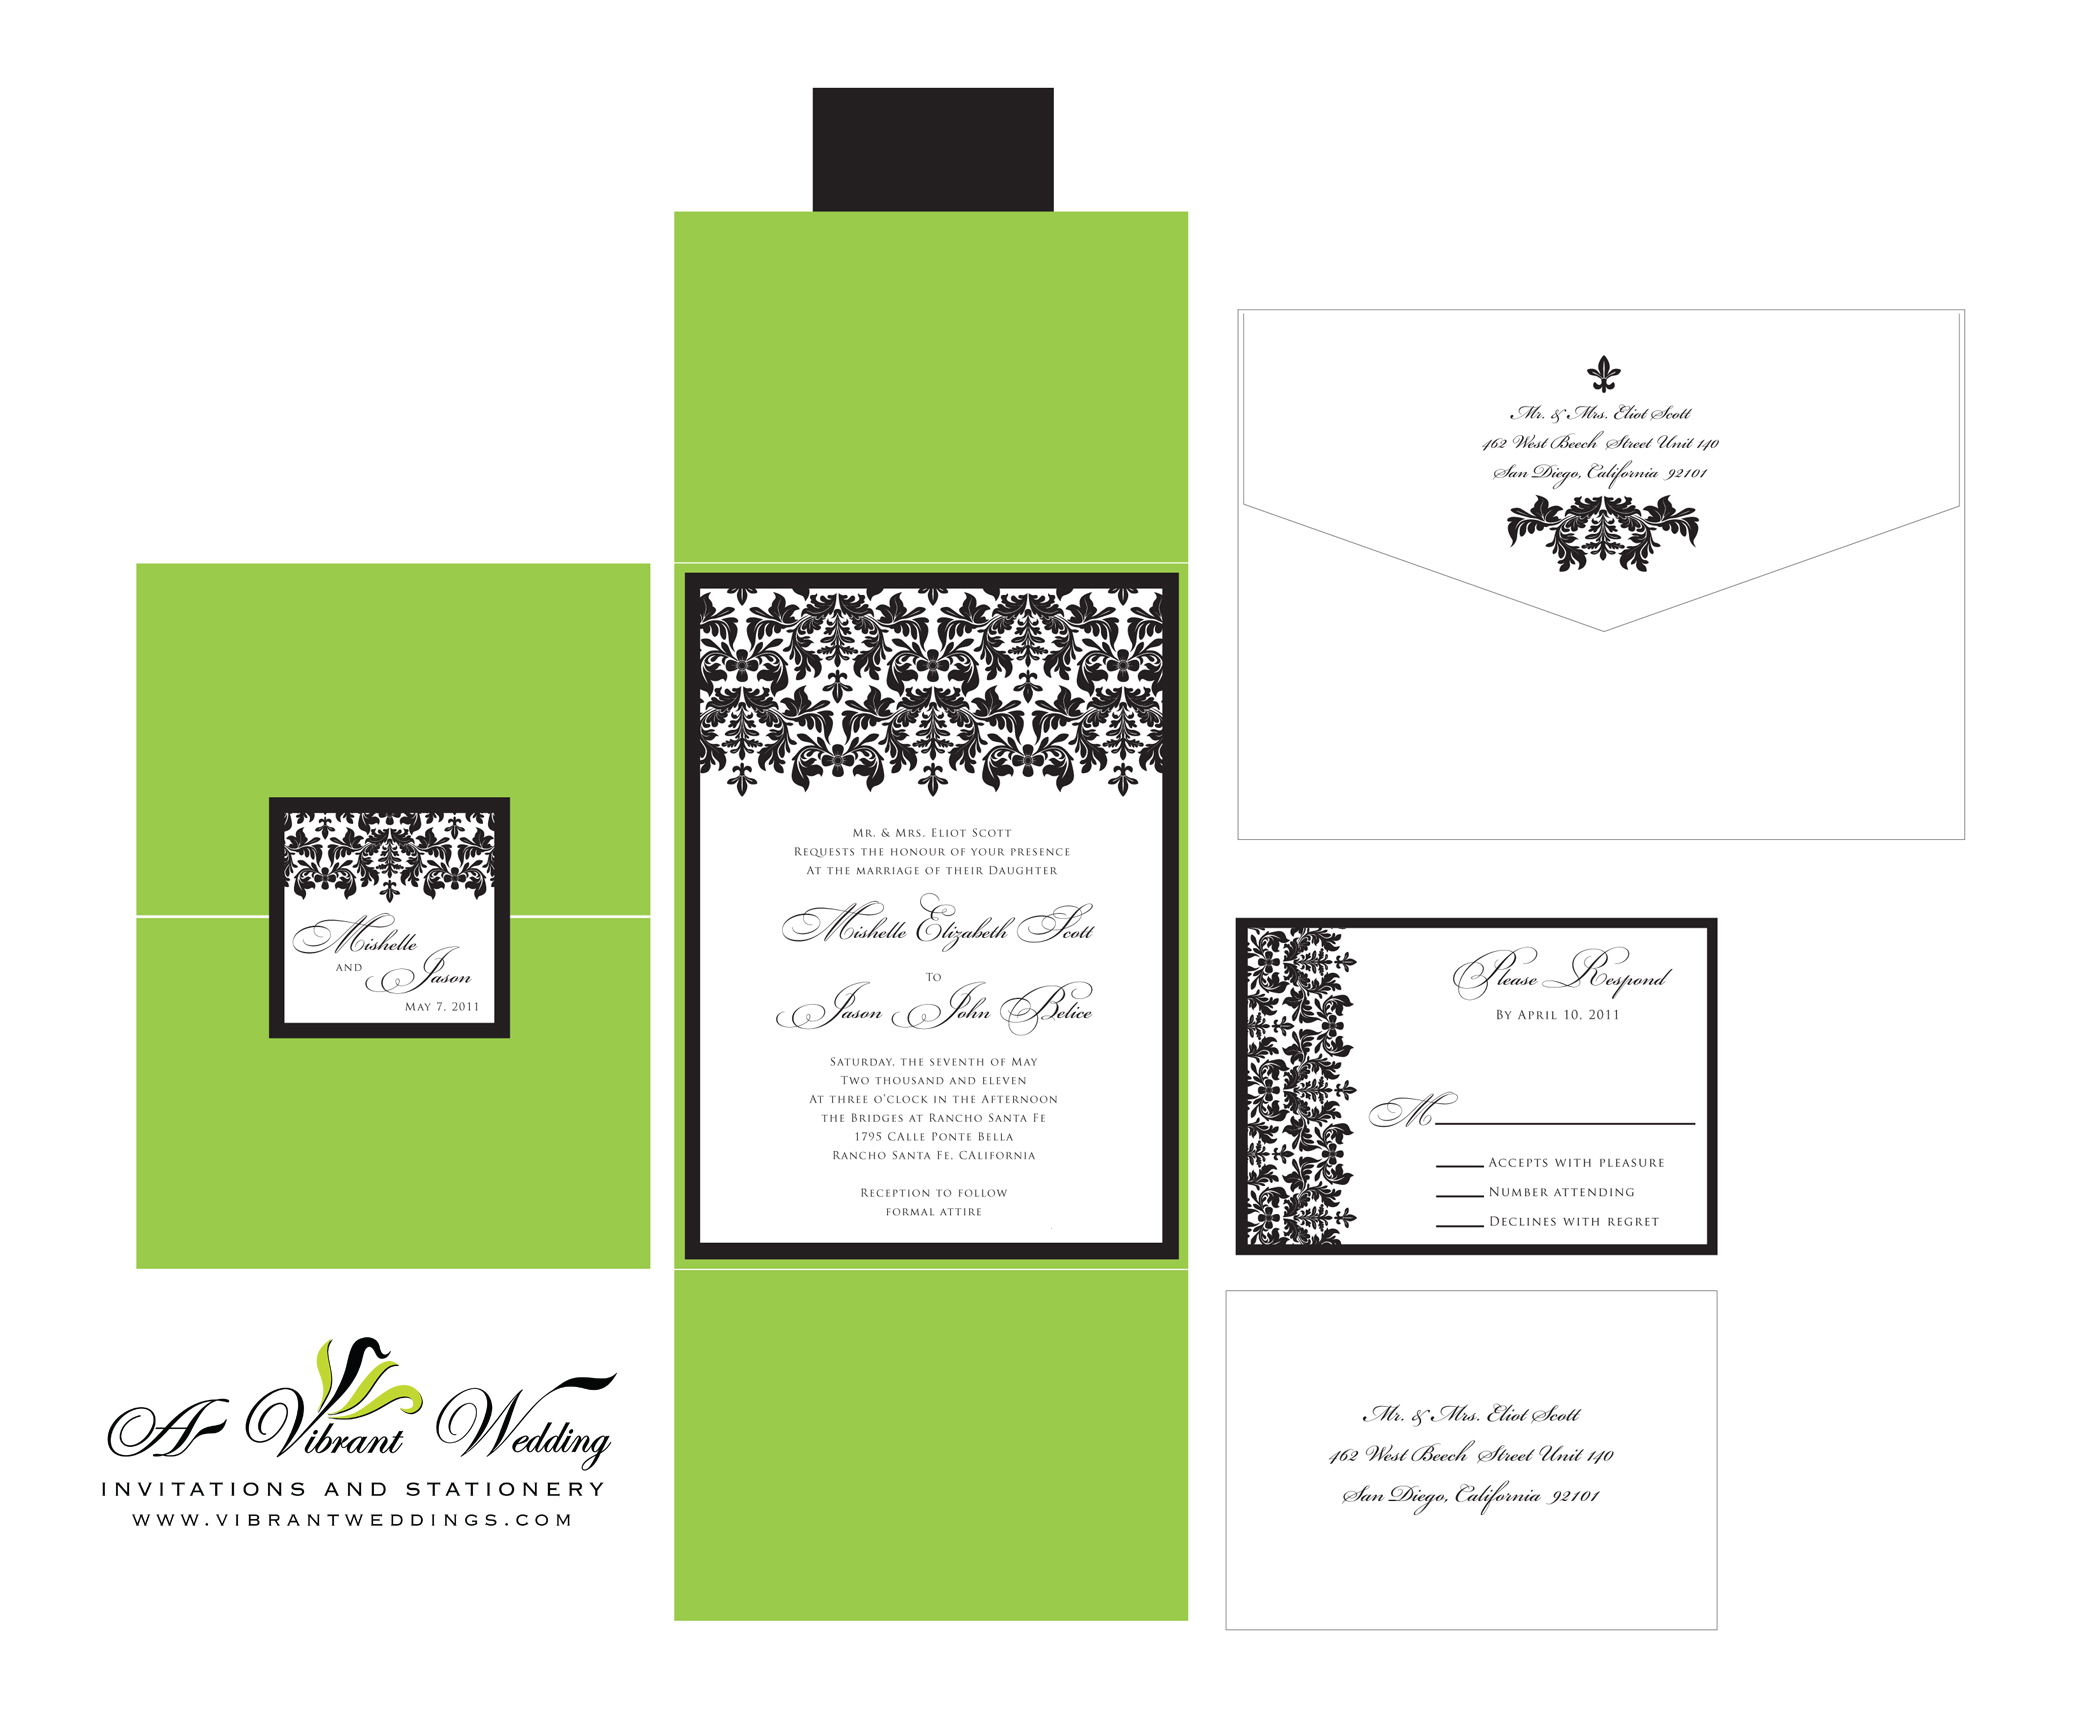 black wedding invitation  u2013 a vibrant wedding